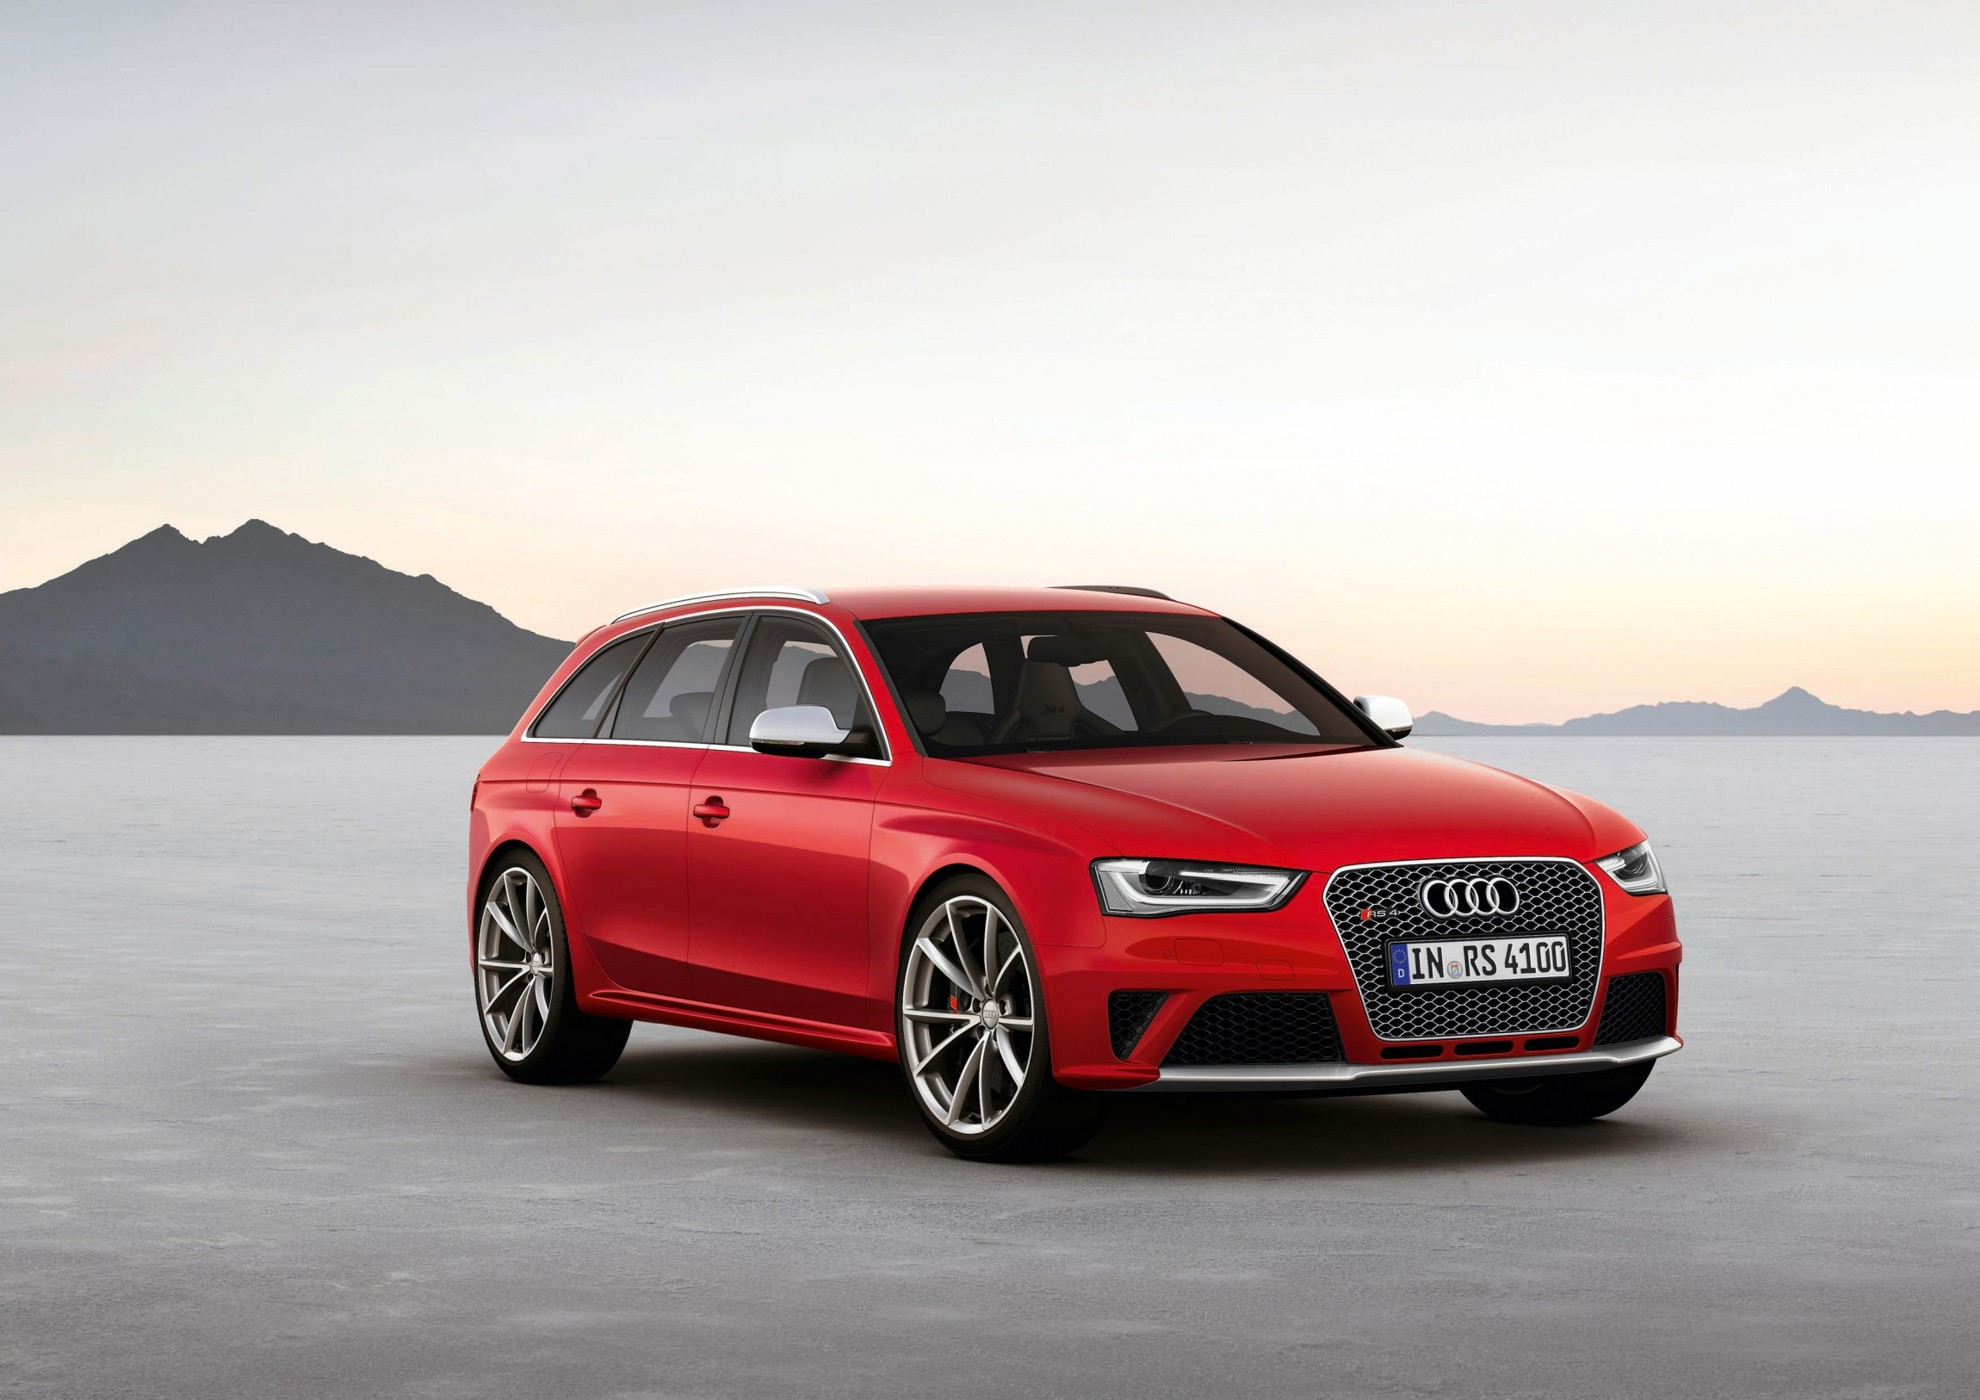 Audi RS4 Avant – now available in South Africa